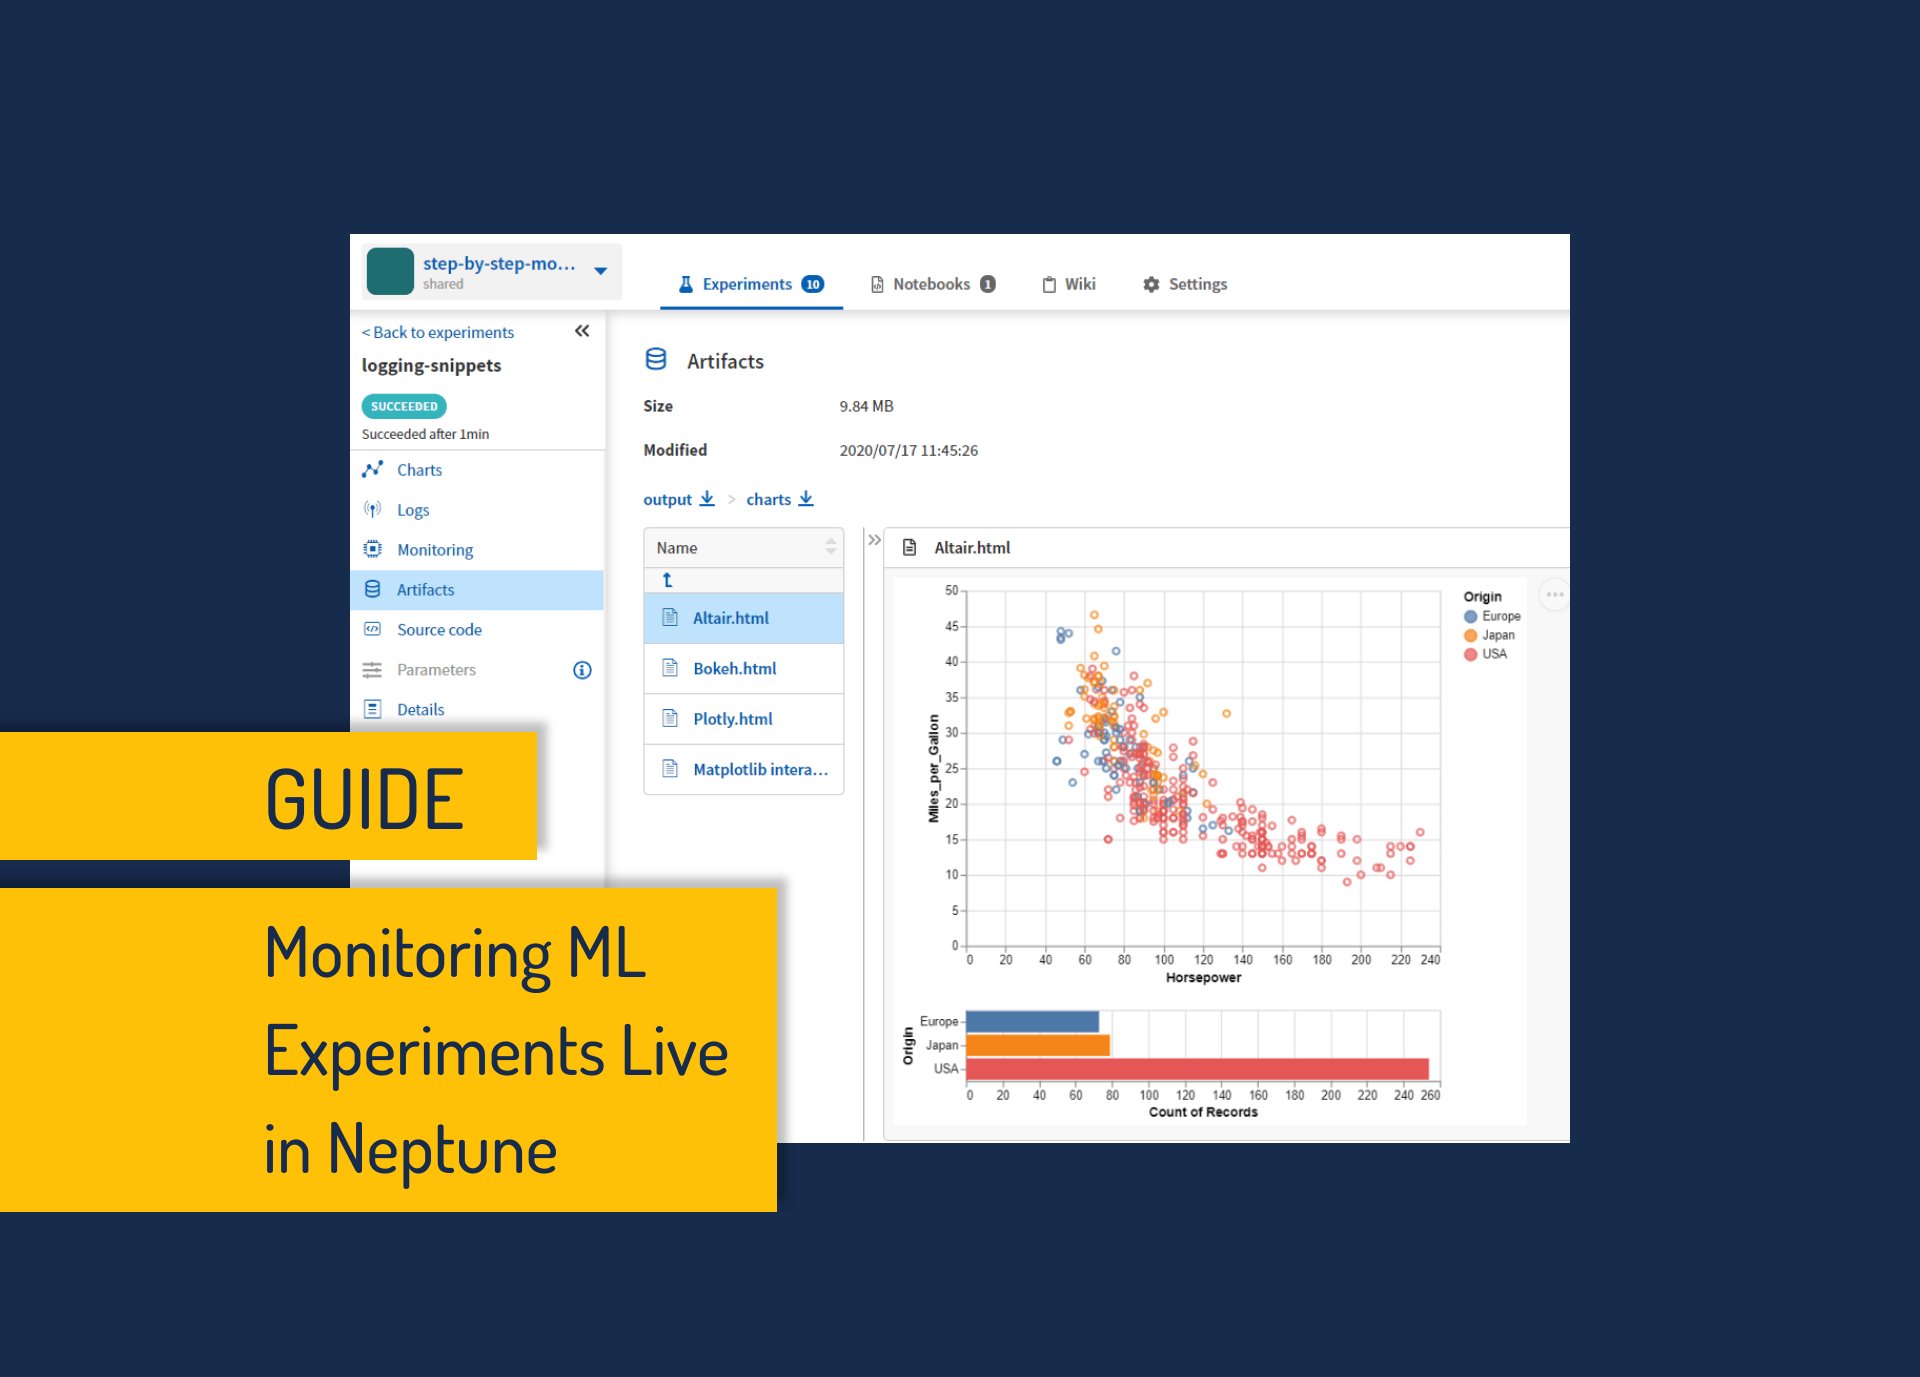 A Complete Guide to Monitoring ML Experiments Live in Neptune - RapidAPI